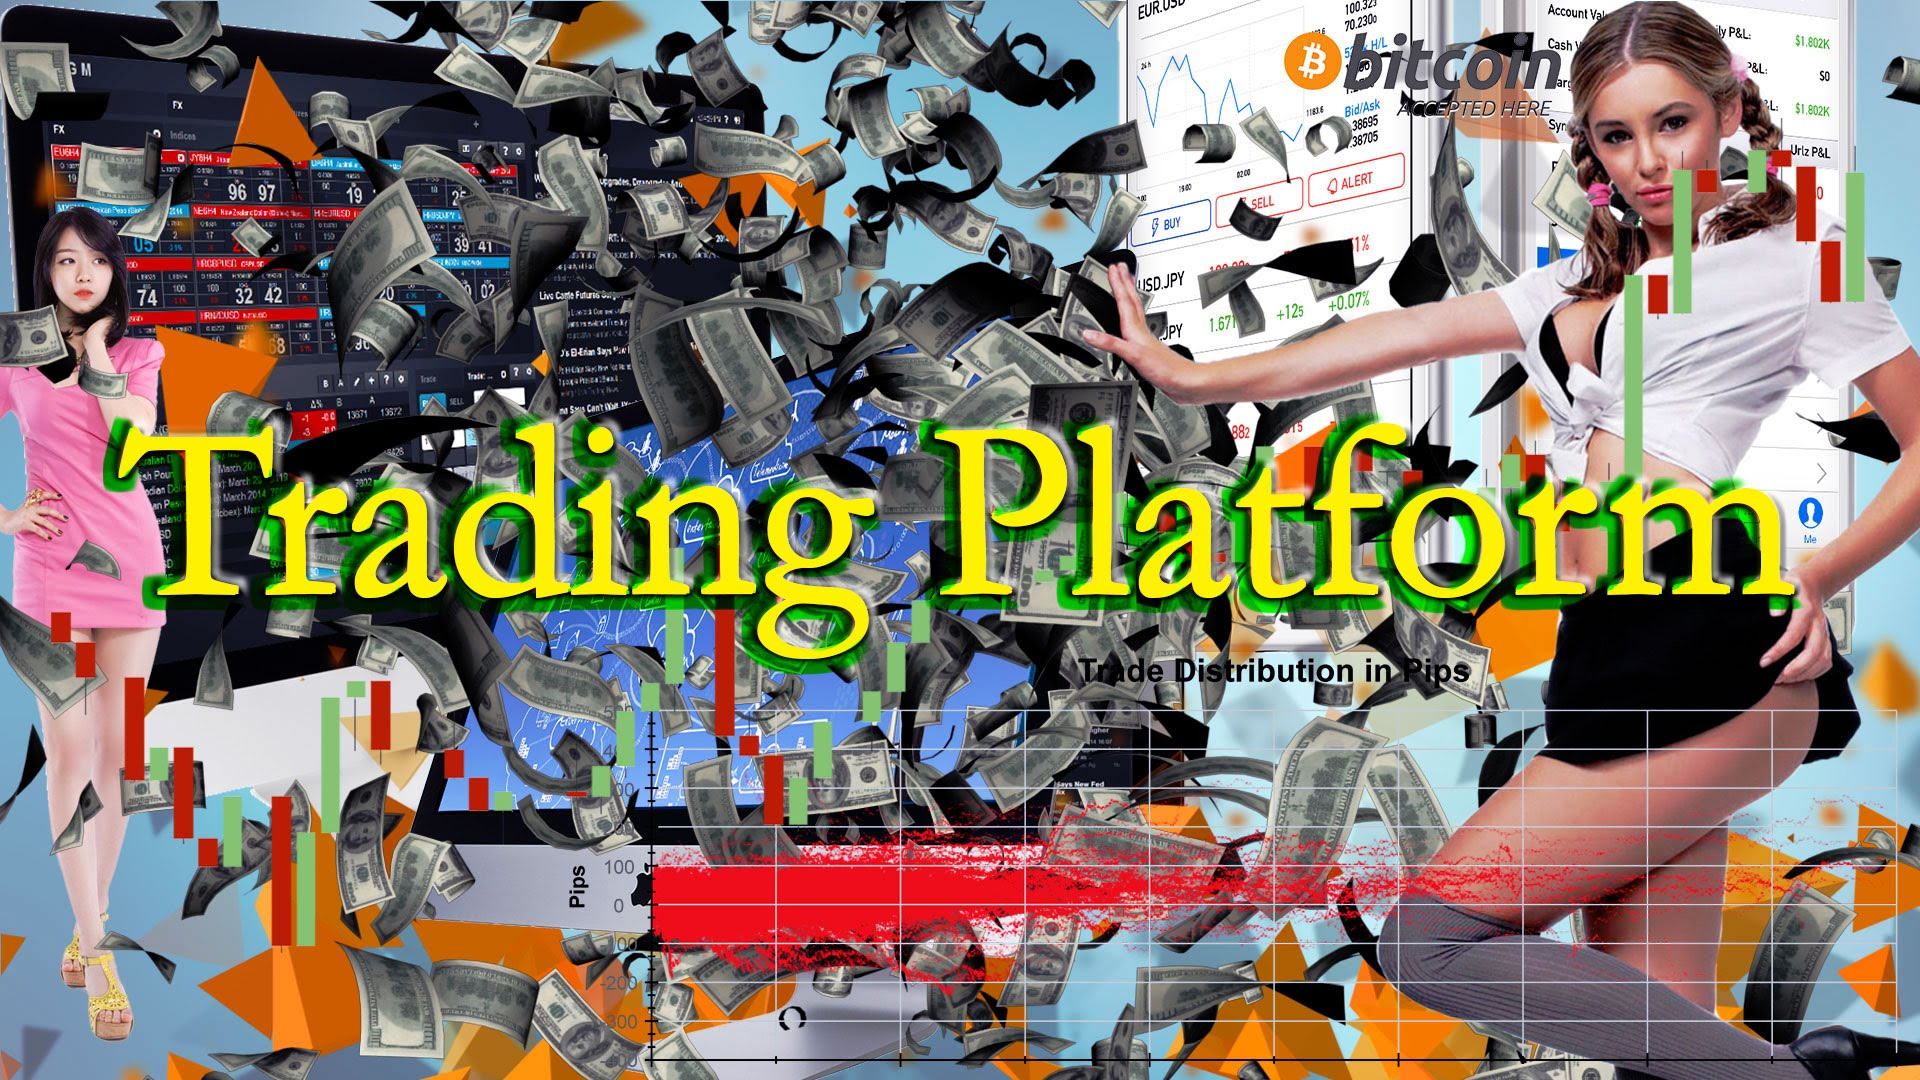 Trading Platform: Best Trading Platform in 2015 | Best Day Trading Software, Tutorial, Reviews